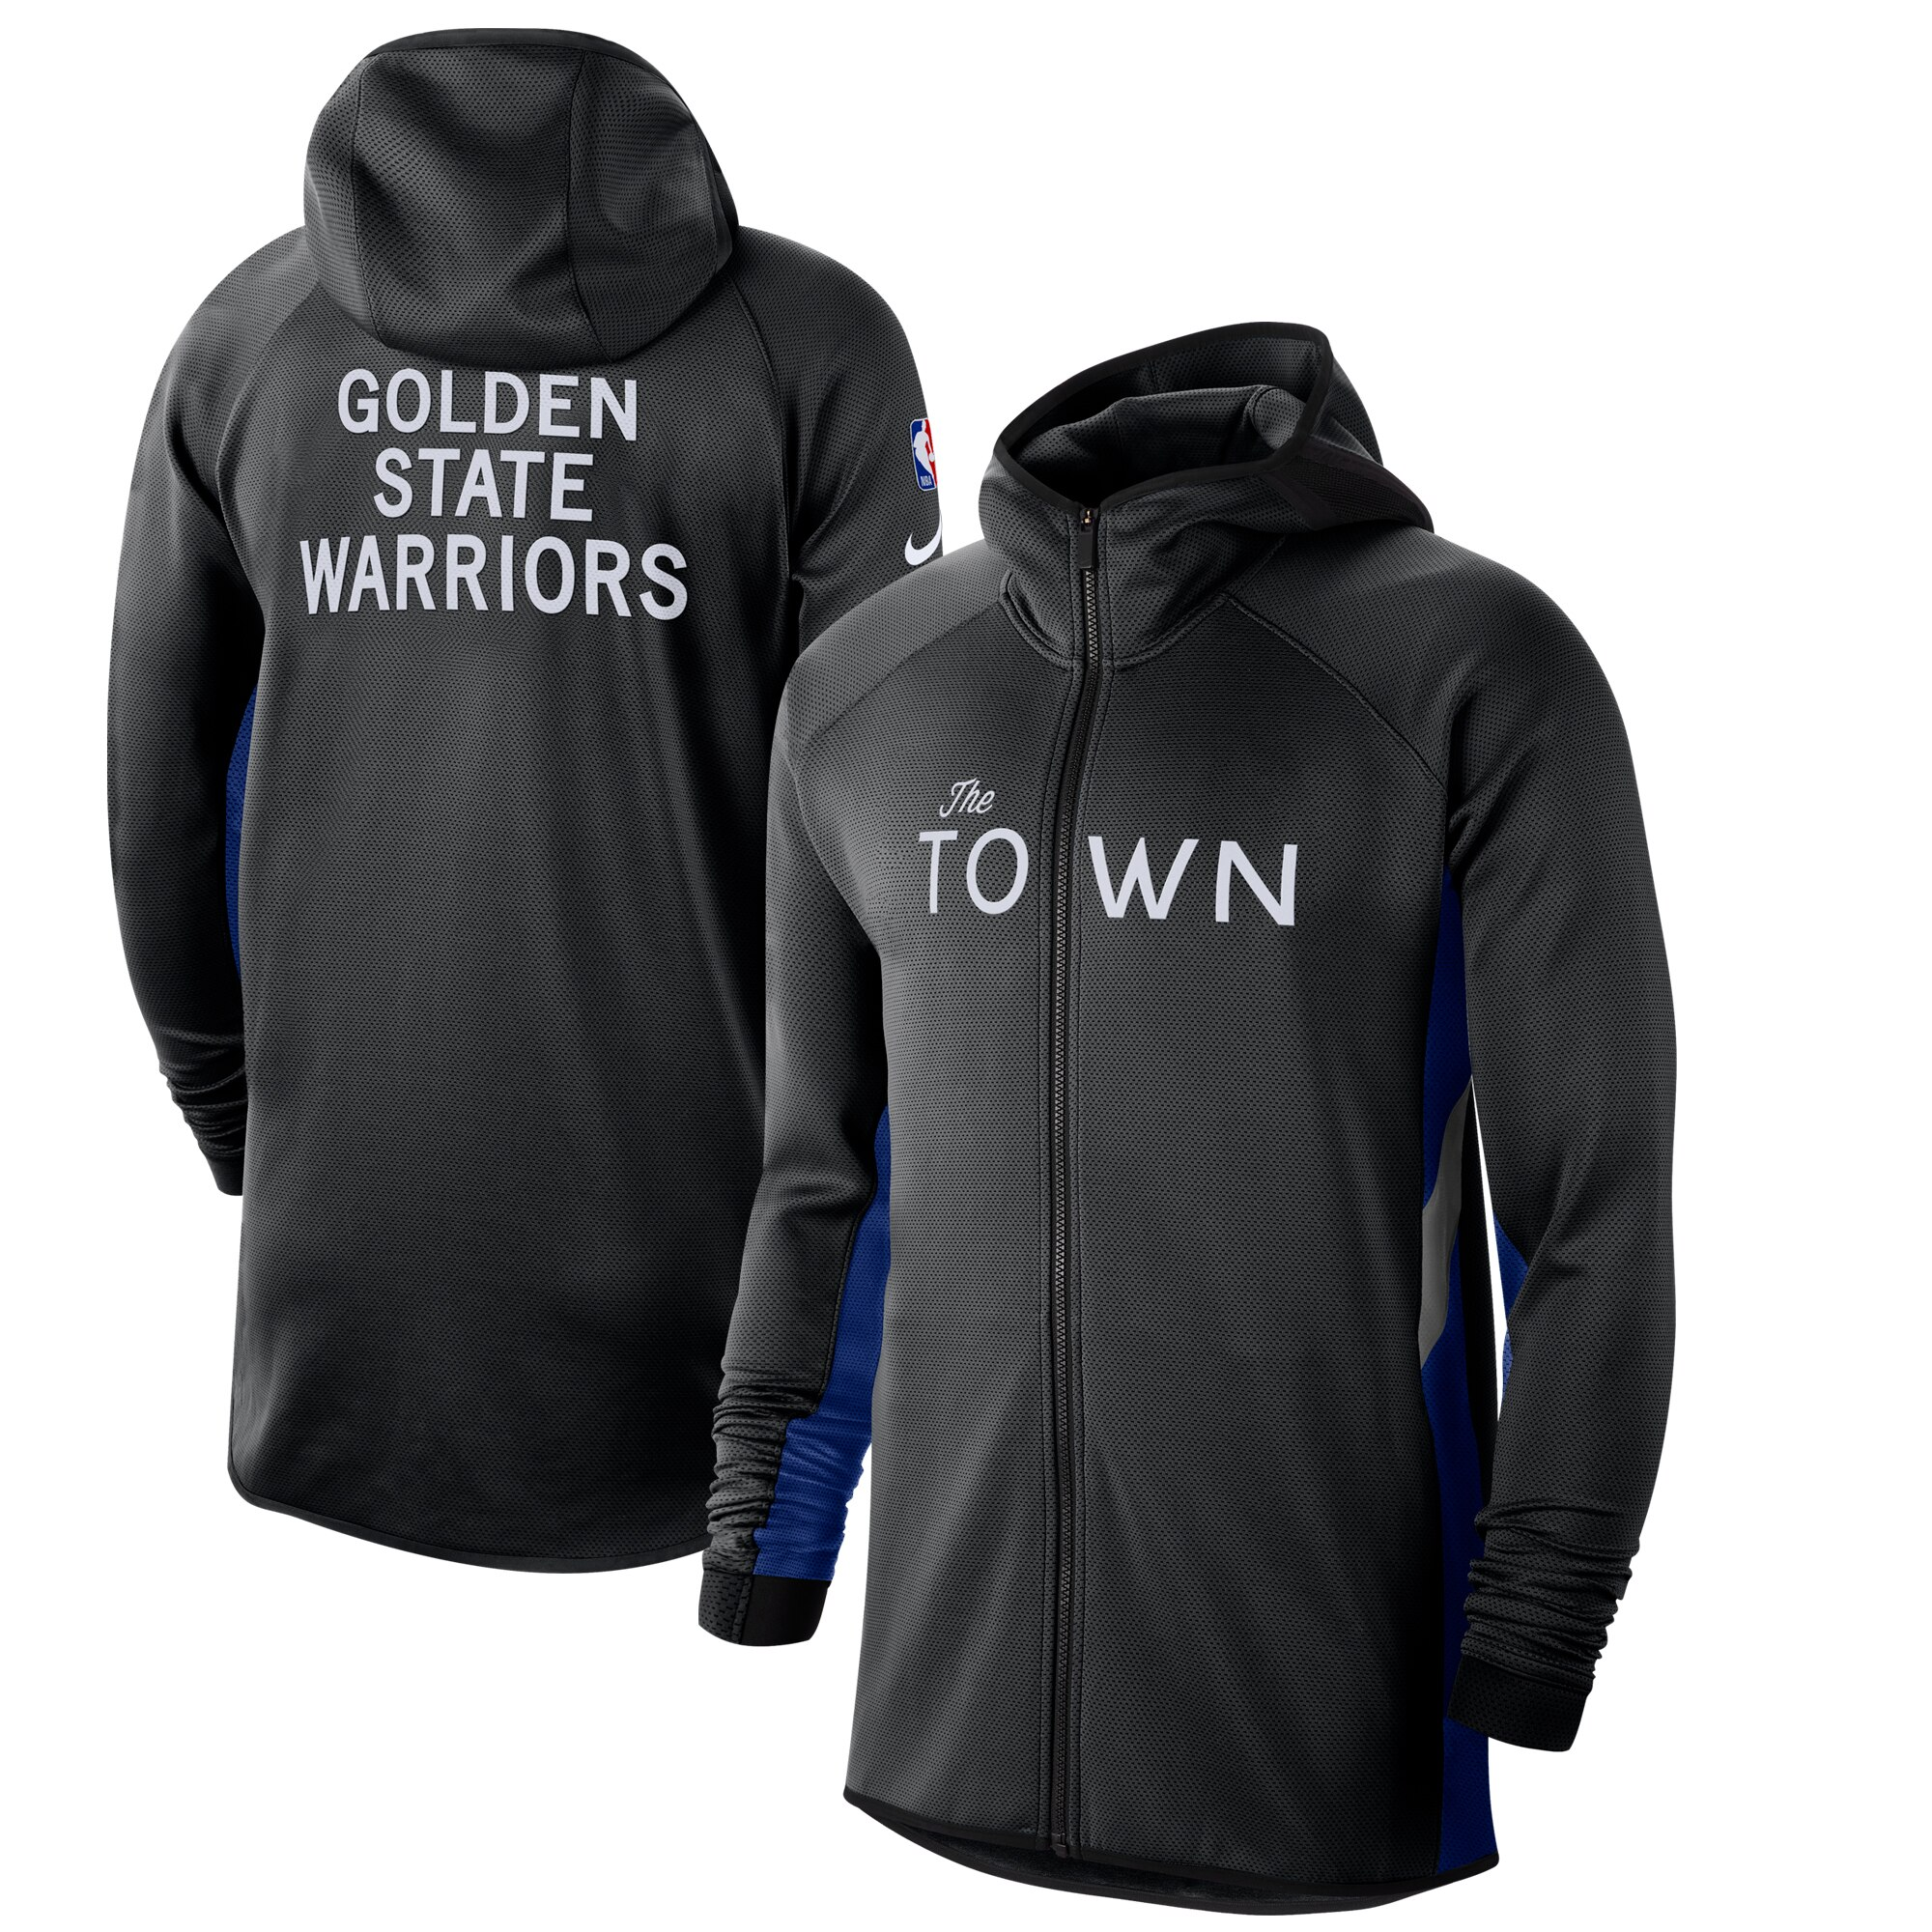 Wholesale Men Nike Golden State Warriors BlackBlue 201920 Earned Edition Showtime FullZip Performance Hoodie